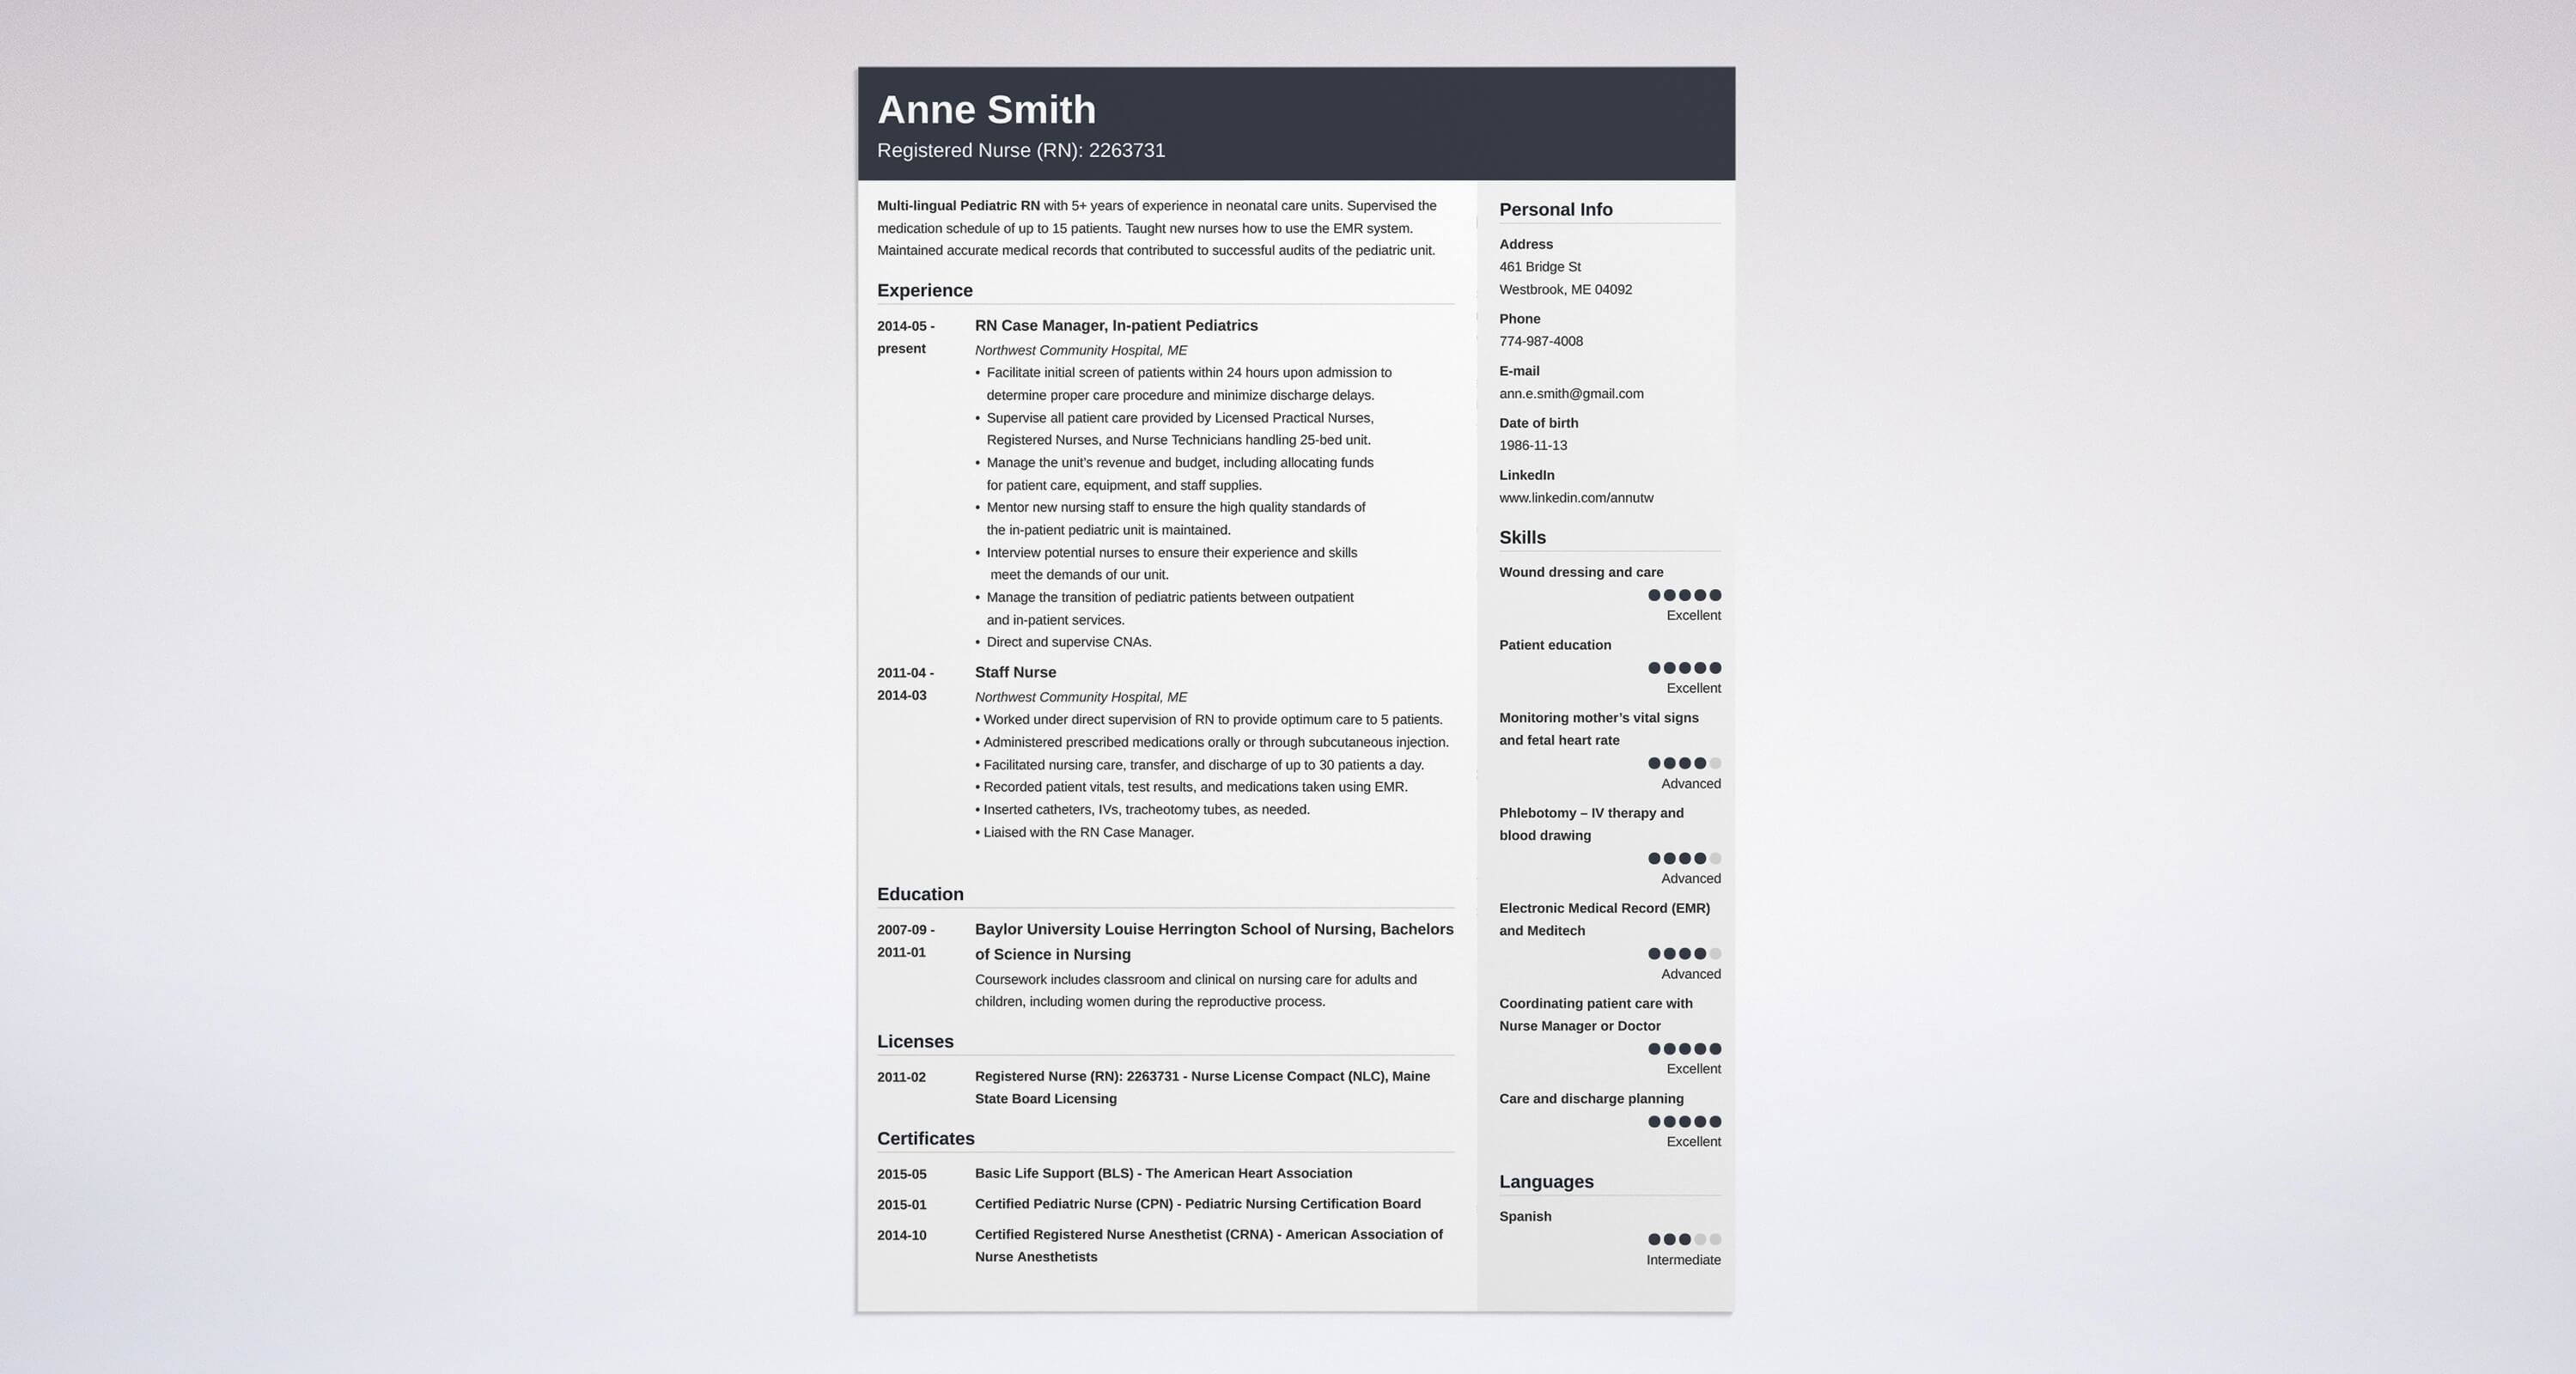 Sample Resume Rn Nursing Resume Template Guide Examples Of Experience Skills